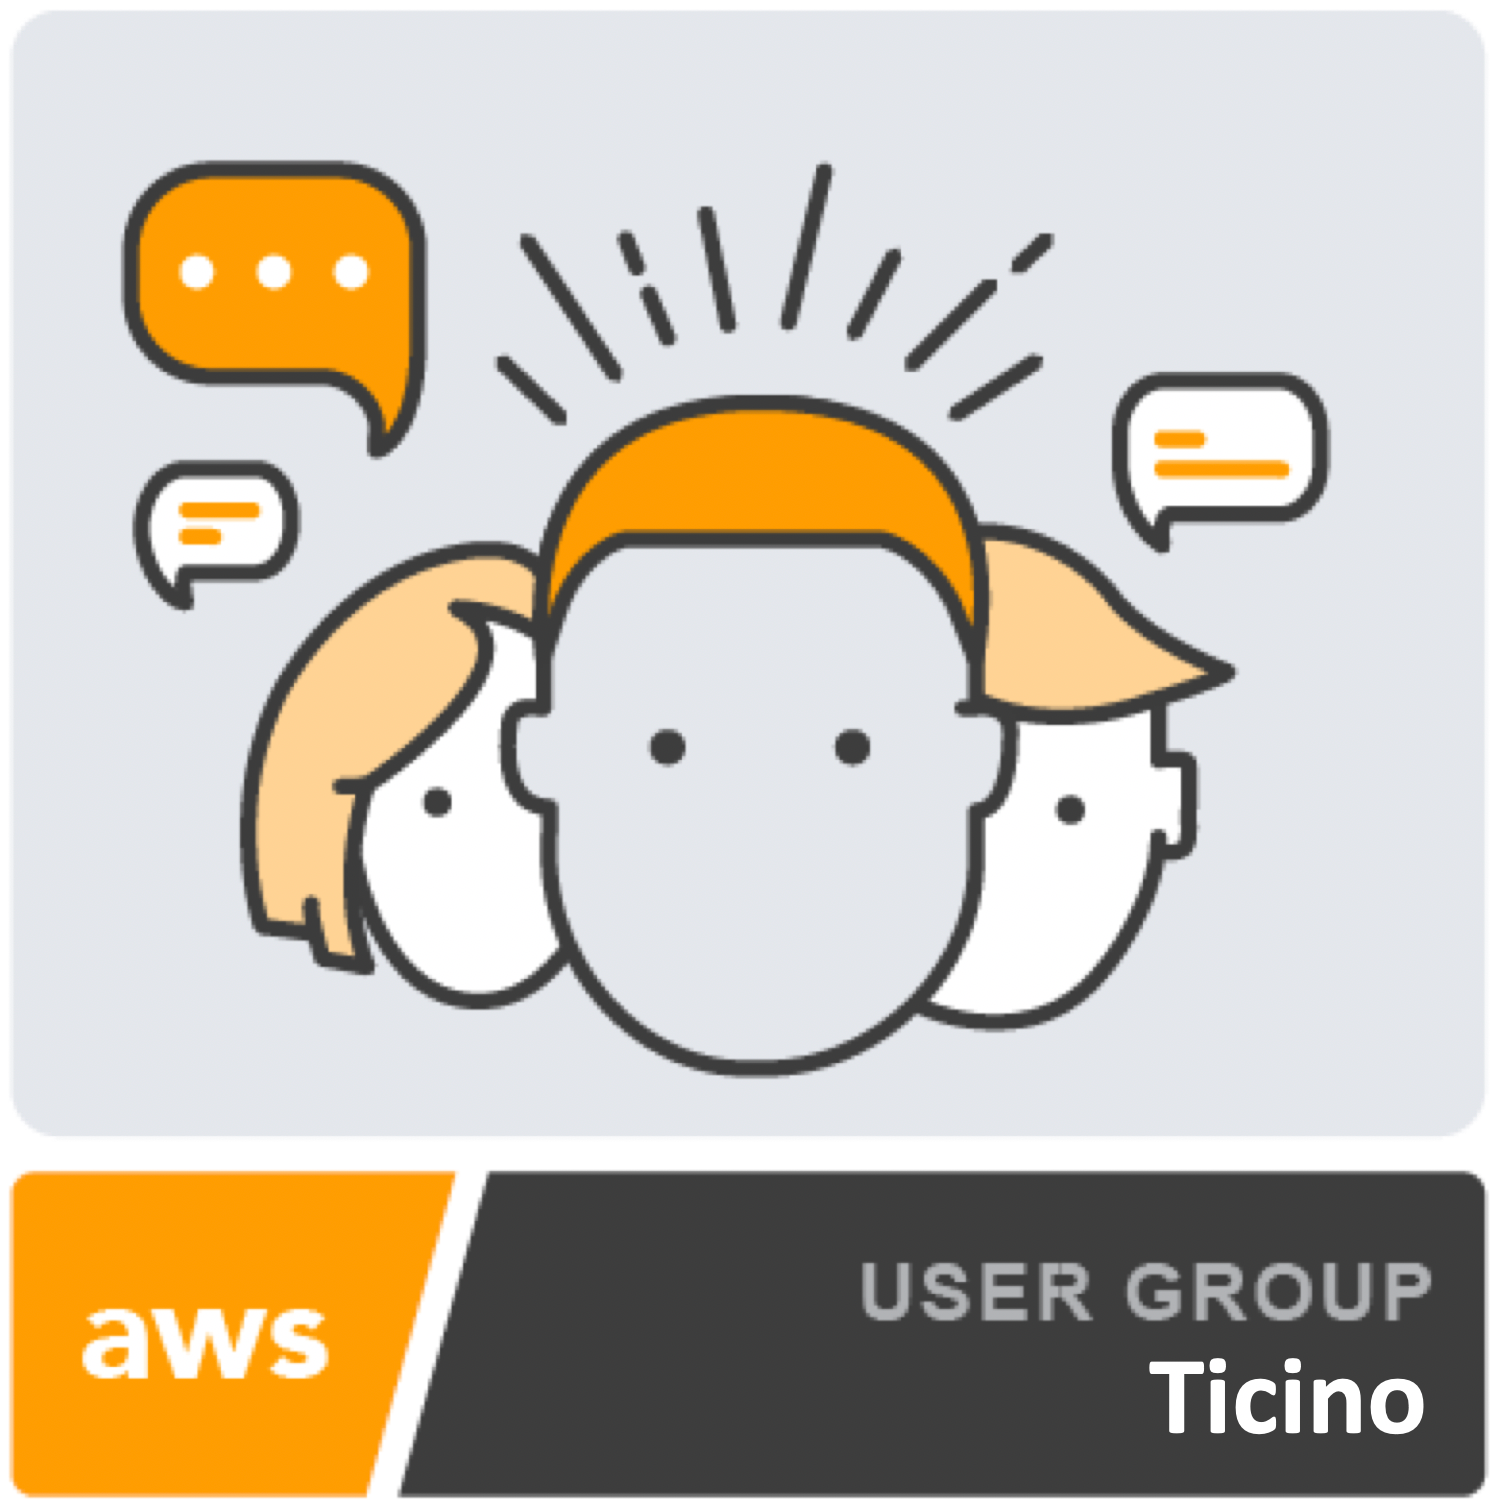 AWS User Group - Ticino